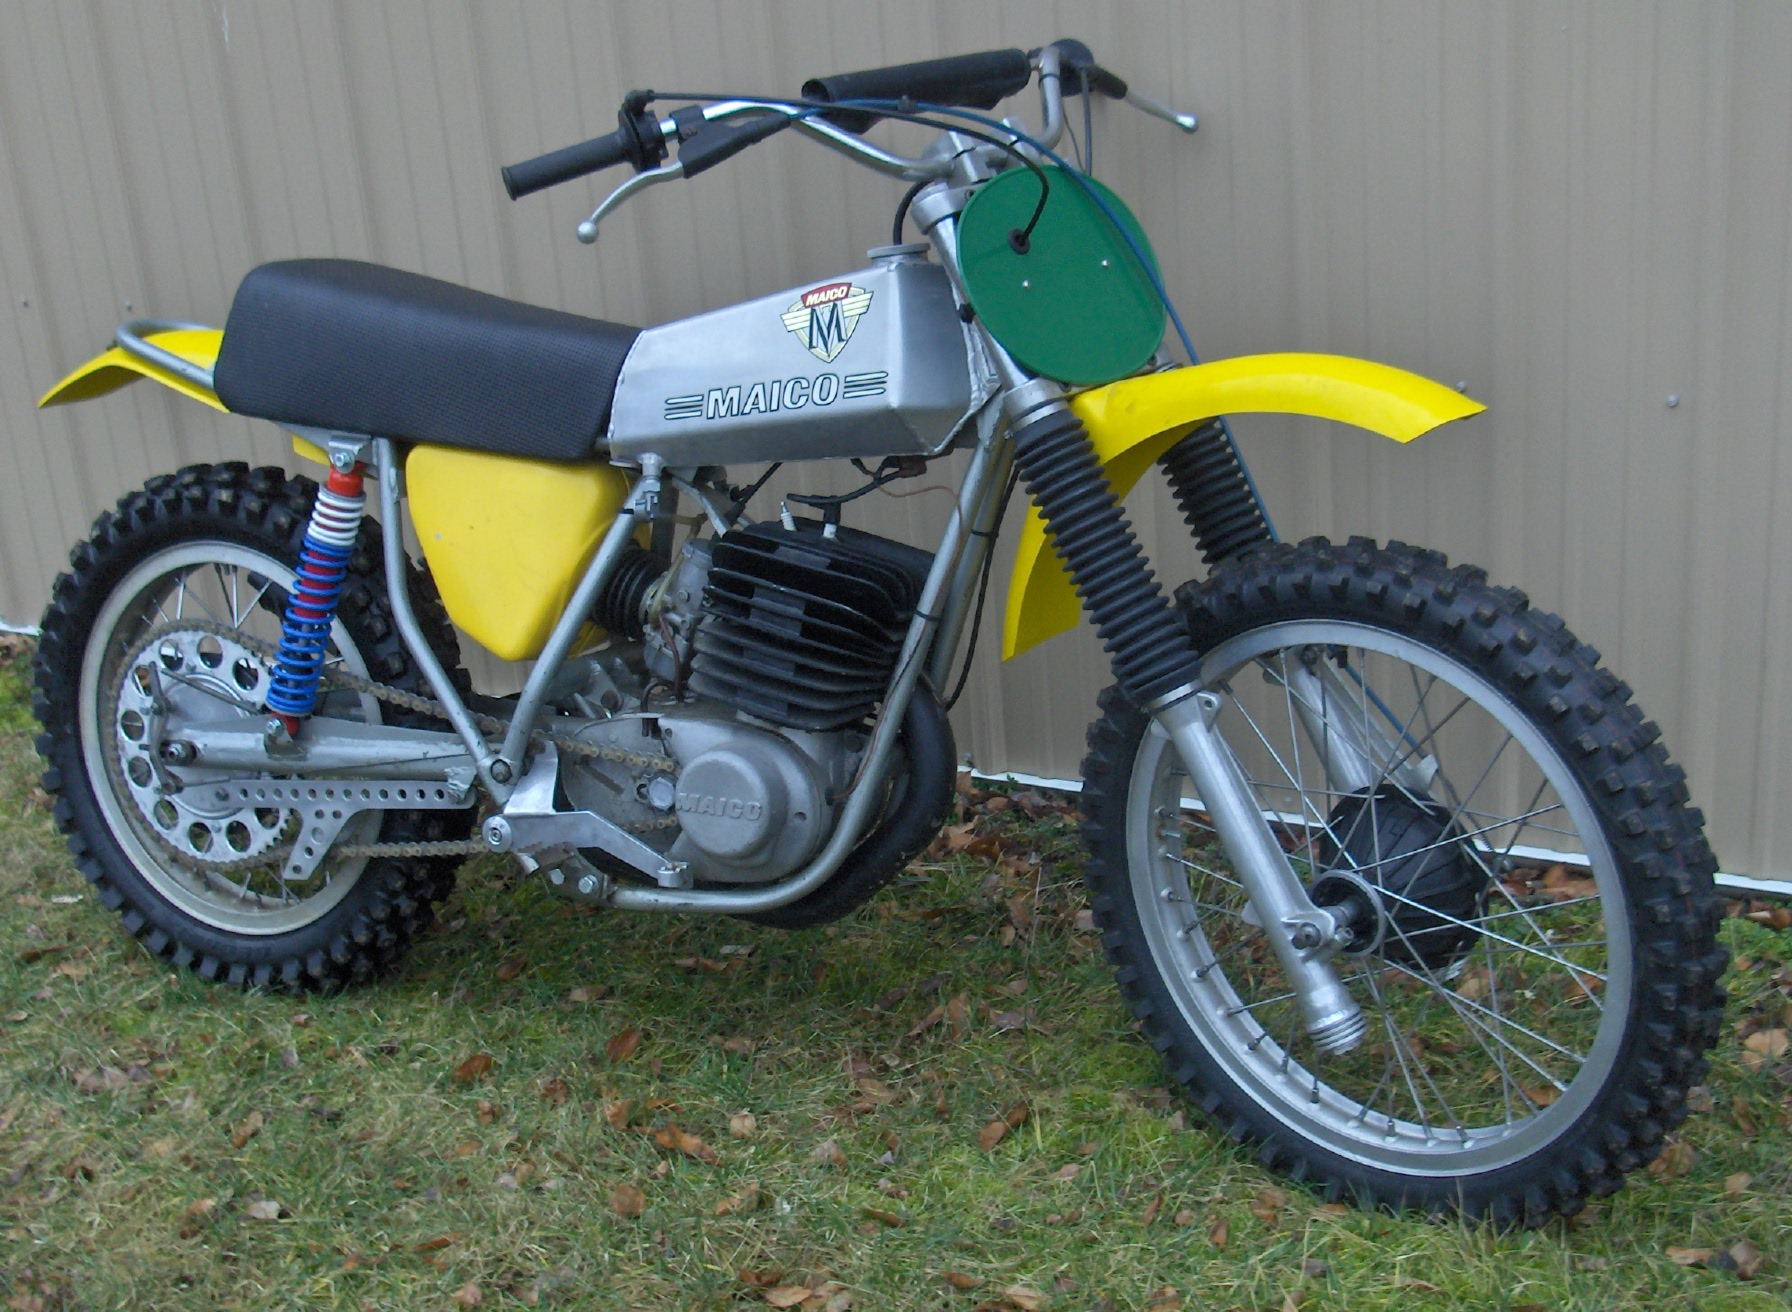 Maico MD 125/6 1975 images #101934